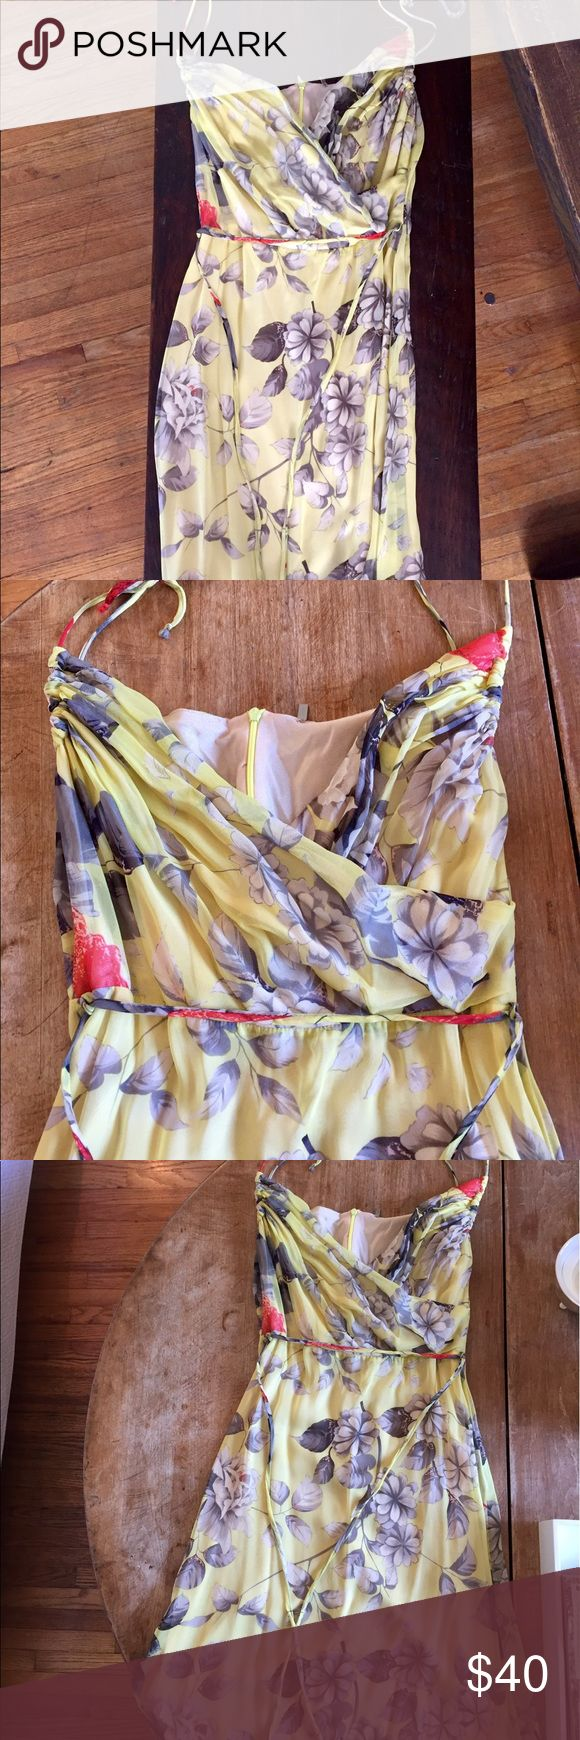 Floral Yellow Dres This is a very light weight dress that is great for going out and looks great with flats or strappy sandals. I wore it with a jean jacket or pashmina depending on where i was going. Minimal wear.  No stains and smoke free home. 🙂 St Vincent Dresses Midi